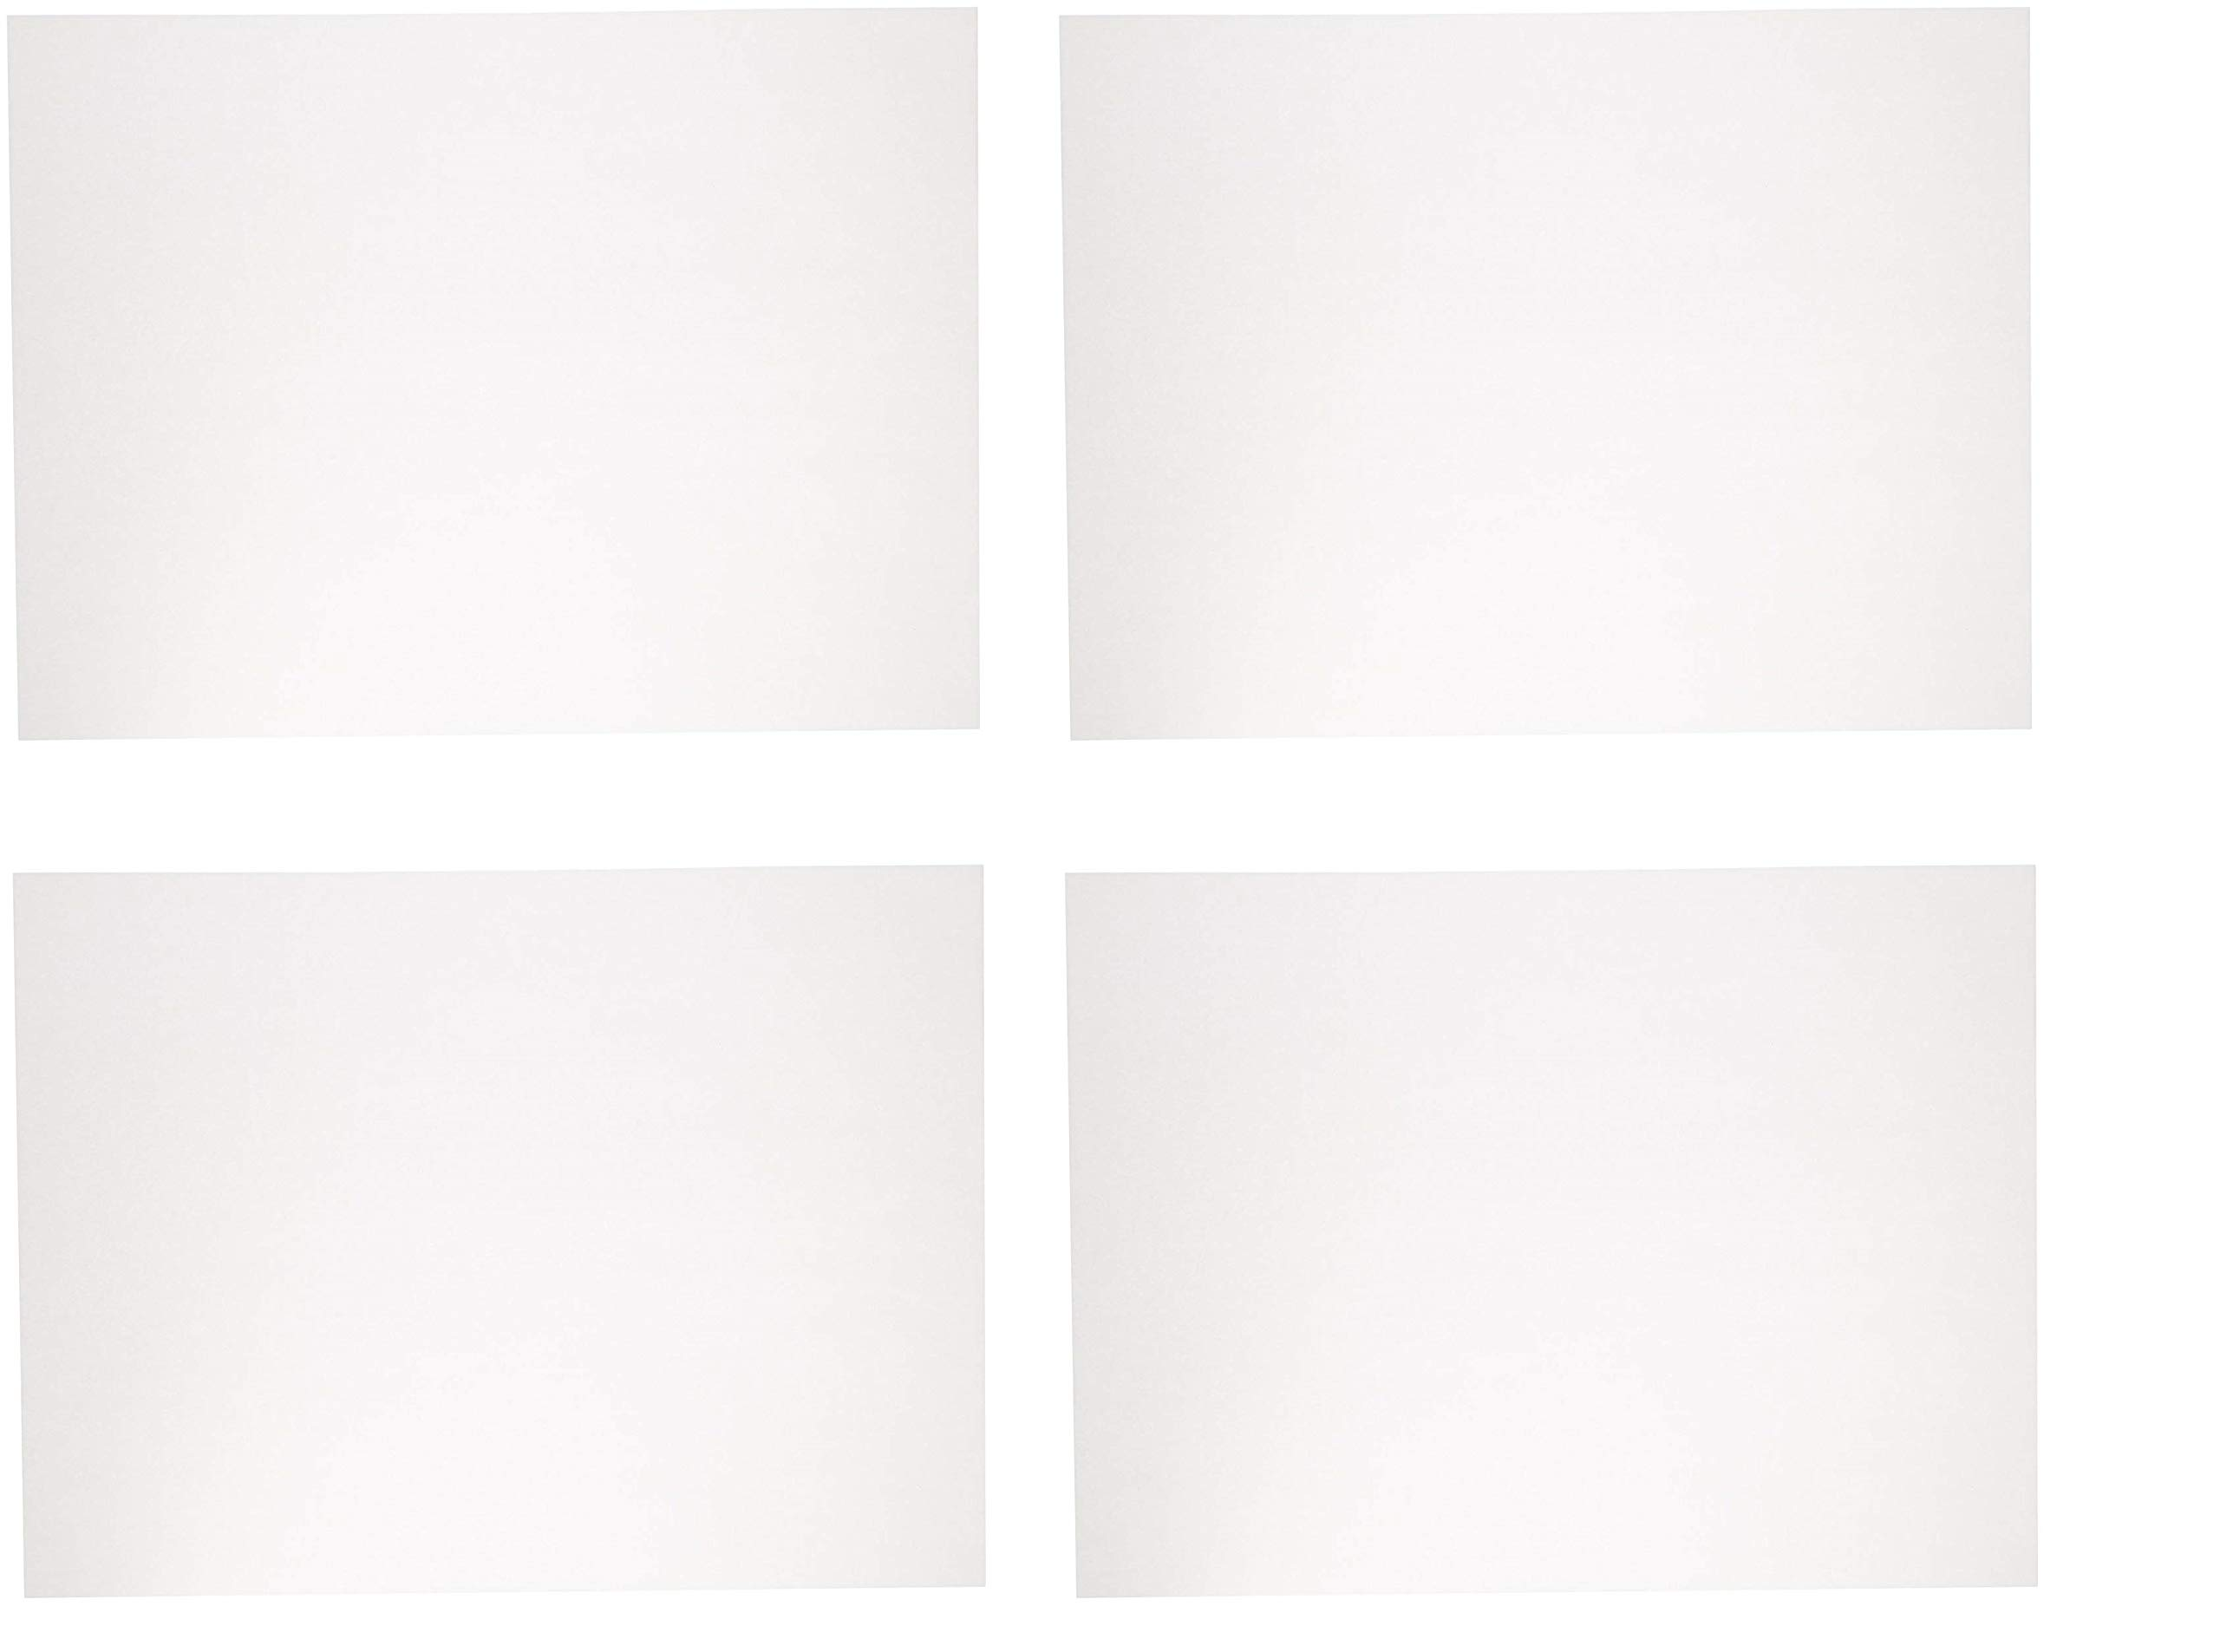 Sax Sulphite Drawing Paper, 60 lb, 18 x 24 Inches, Extra-White, Pack of 500 (4 X Pack of 500)